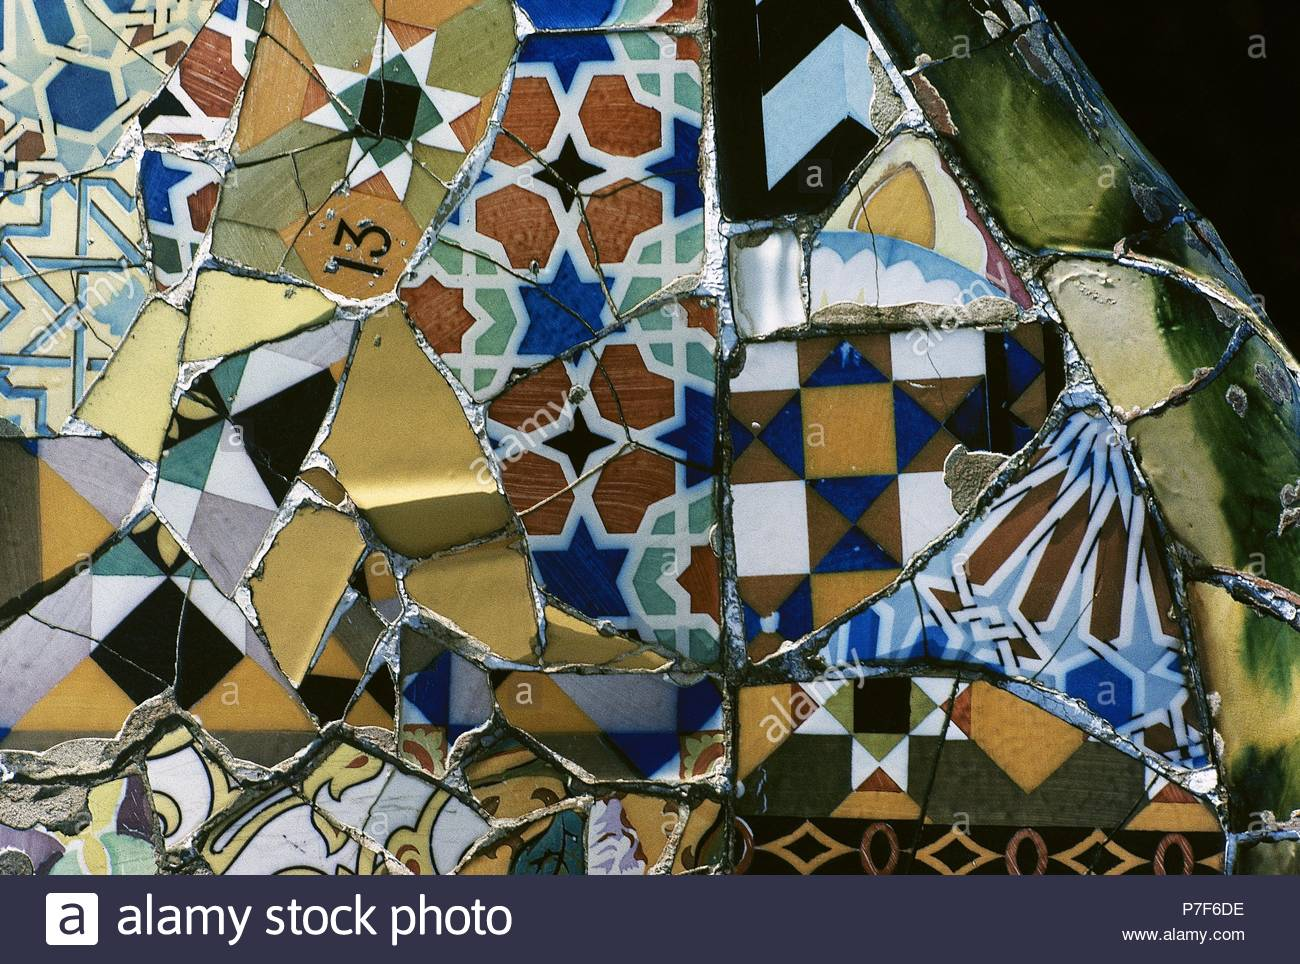 Barcelona, Catalonia, Spain. Park Guell, designed by Antonio Gaudi, 1900-1914. Mosaic on the main terrace, detail. Ceramic technique called Trencadis (fragments of ceramic). Catalan Modernism. - Stock Image